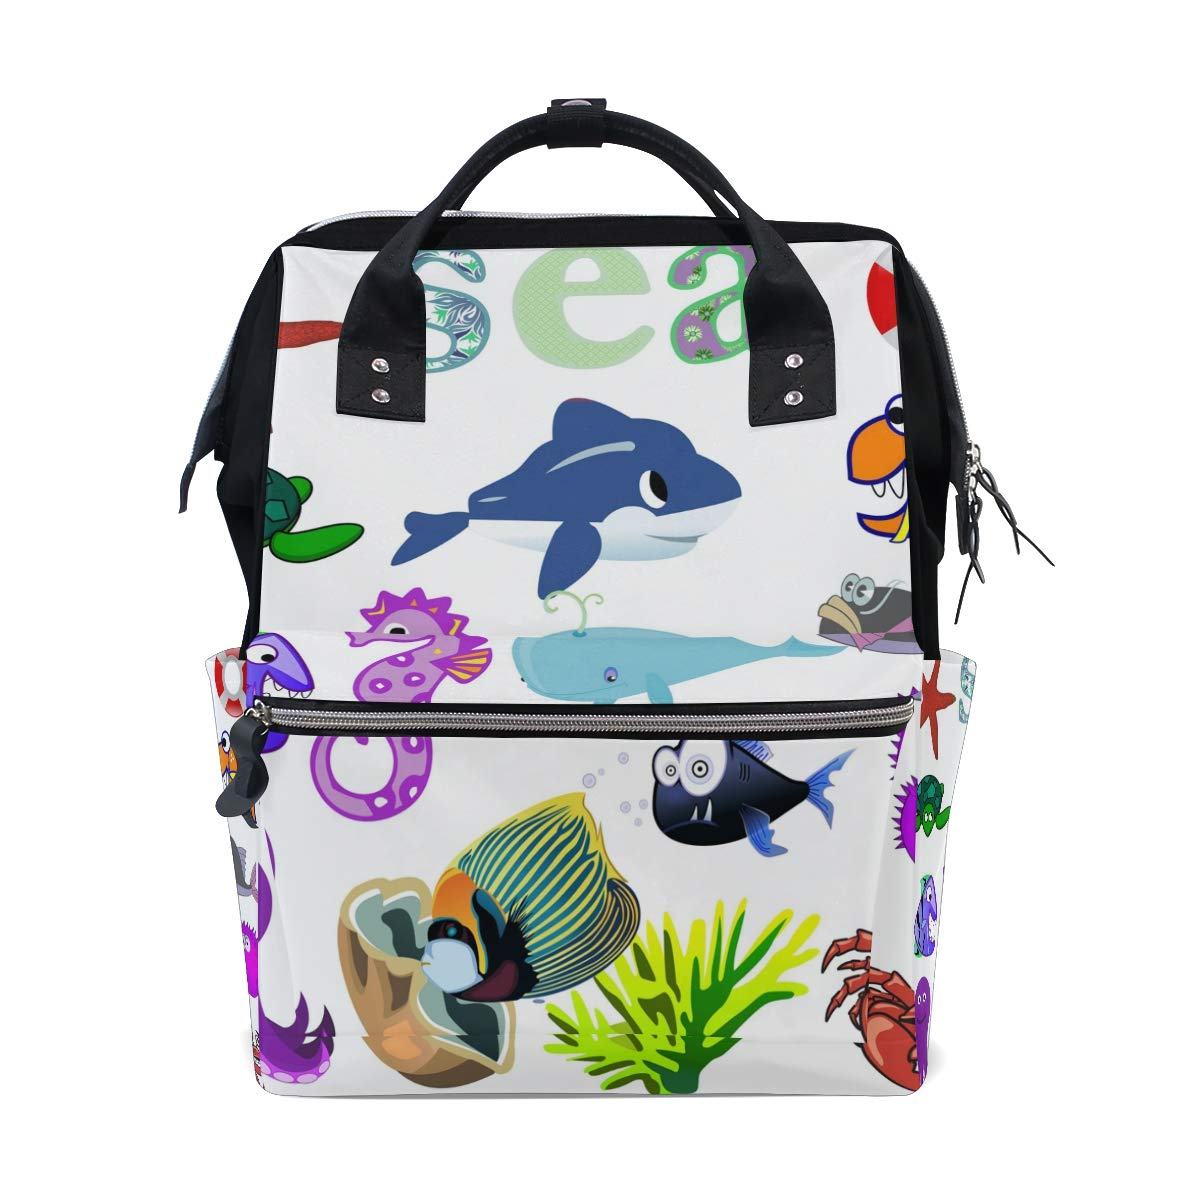 MALPLENA Colorful Boat Painting Luggage Protector Suitcase Cover